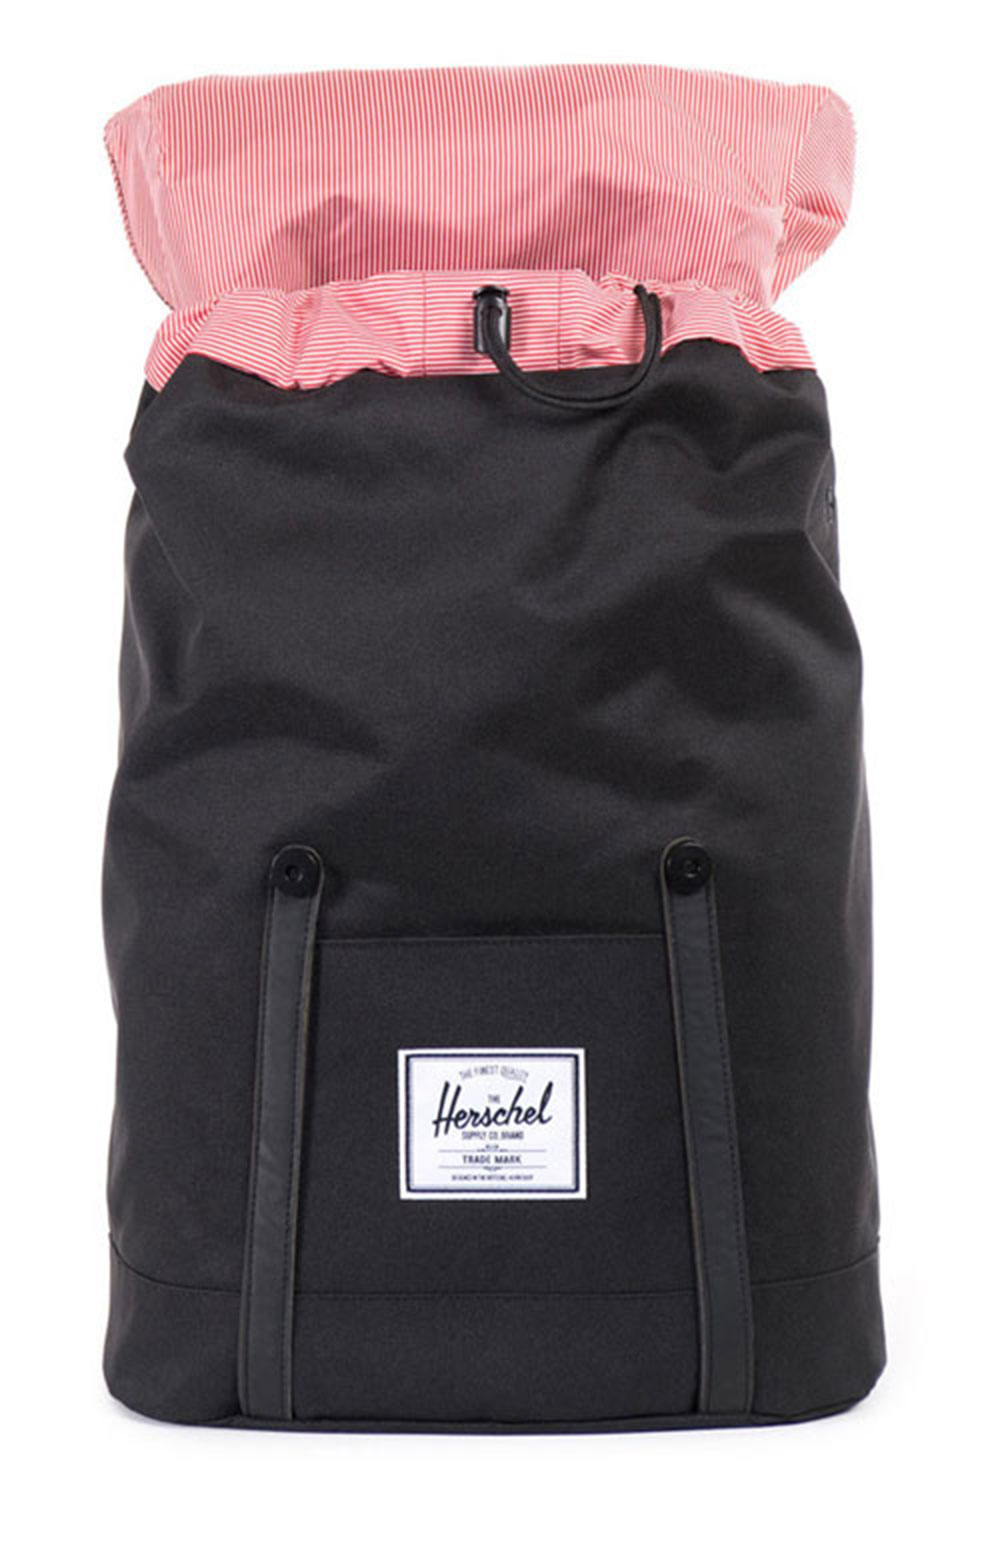 Retreat Backpack - Black/Black PU 2